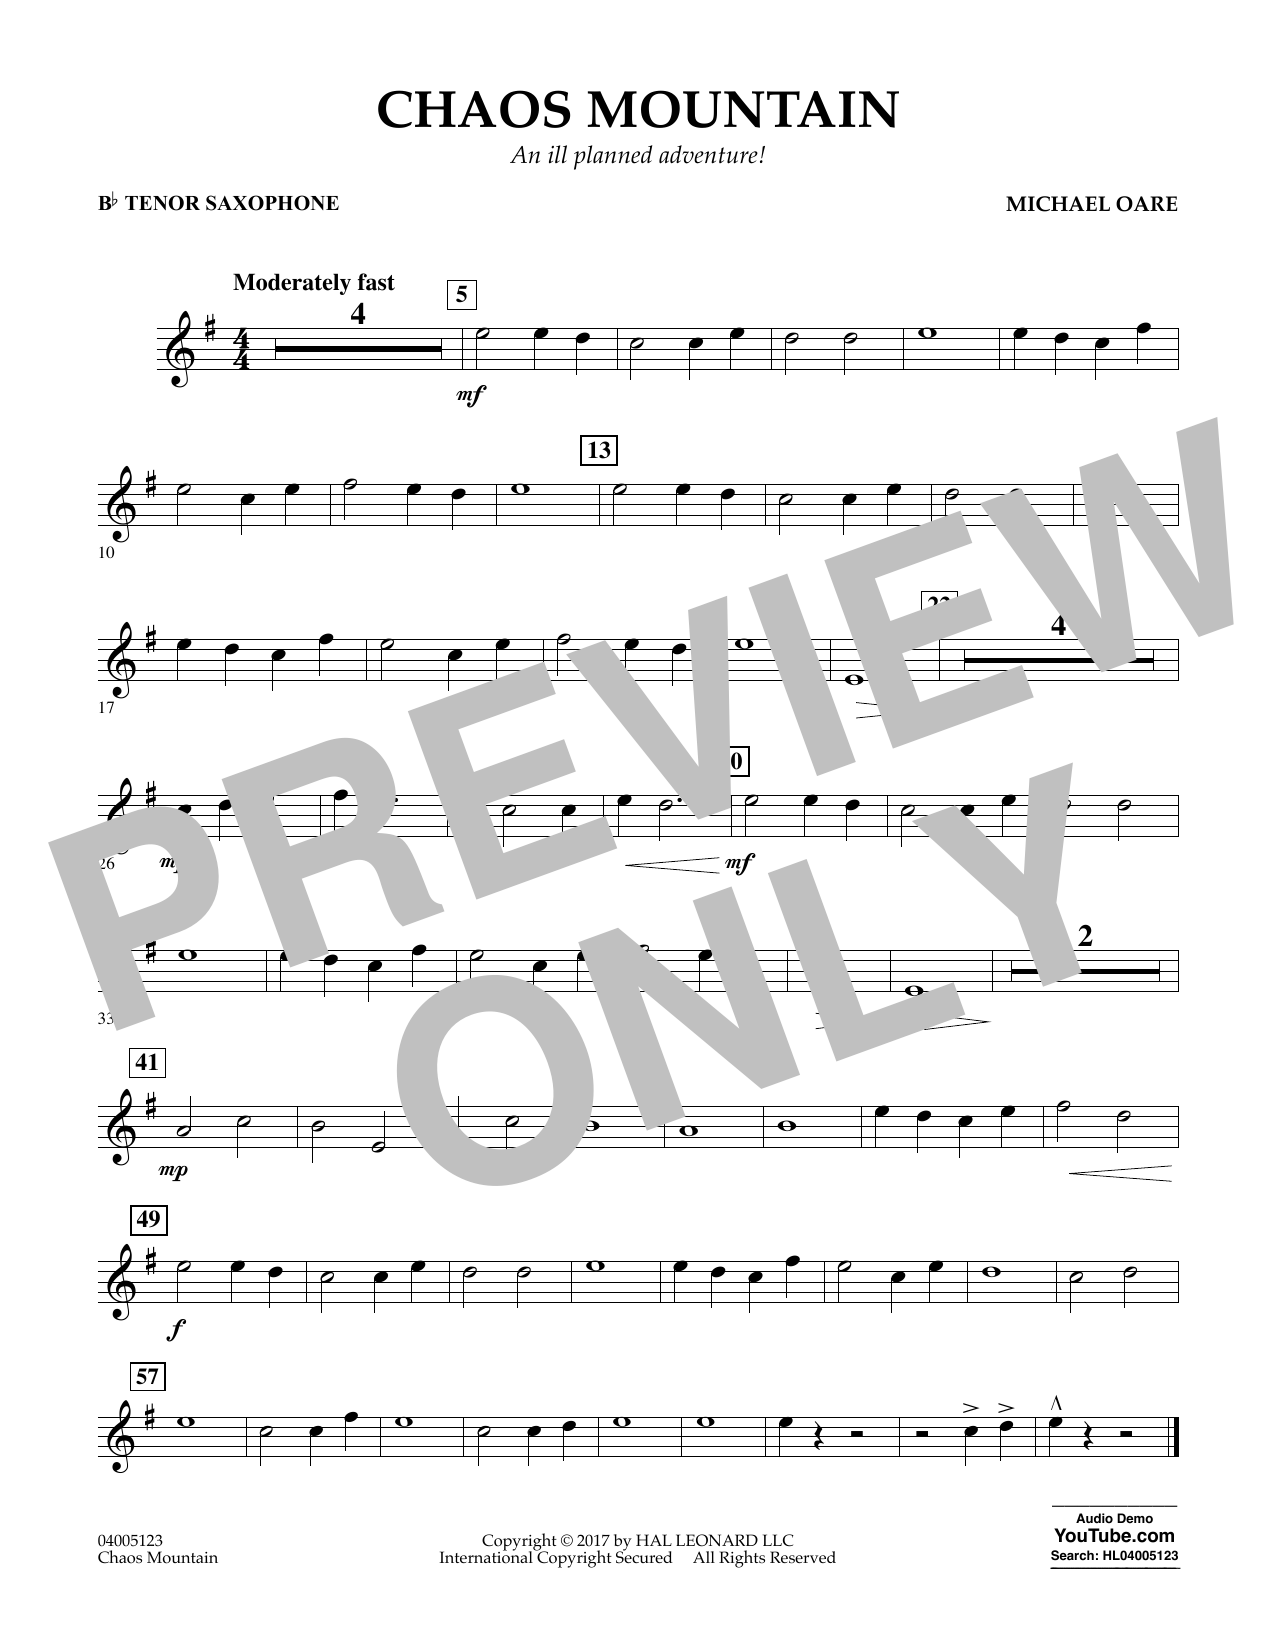 Michael Oare Chaos Mountain - Bb Tenor Saxophone sheet music notes and chords. Download Printable PDF.